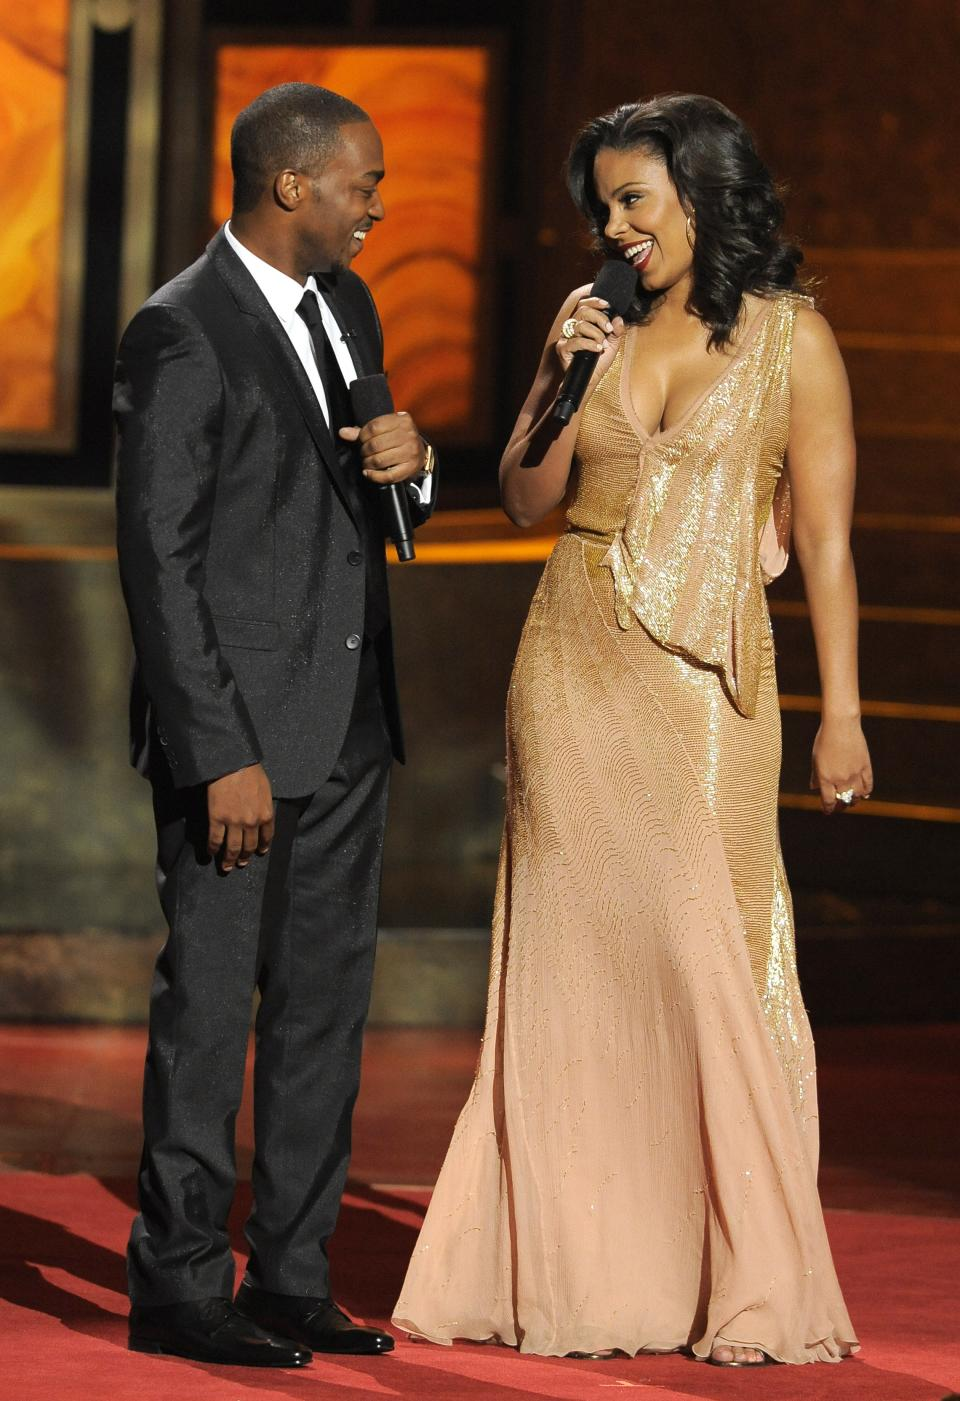 Hosts Anthony Mackie, left, and Sanaa Lathan speak onstage at the 43rd NAACP Image Awards on Friday, Feb. 17, 2012, in Los Angeles. (AP Photo/Chris Pizzello)